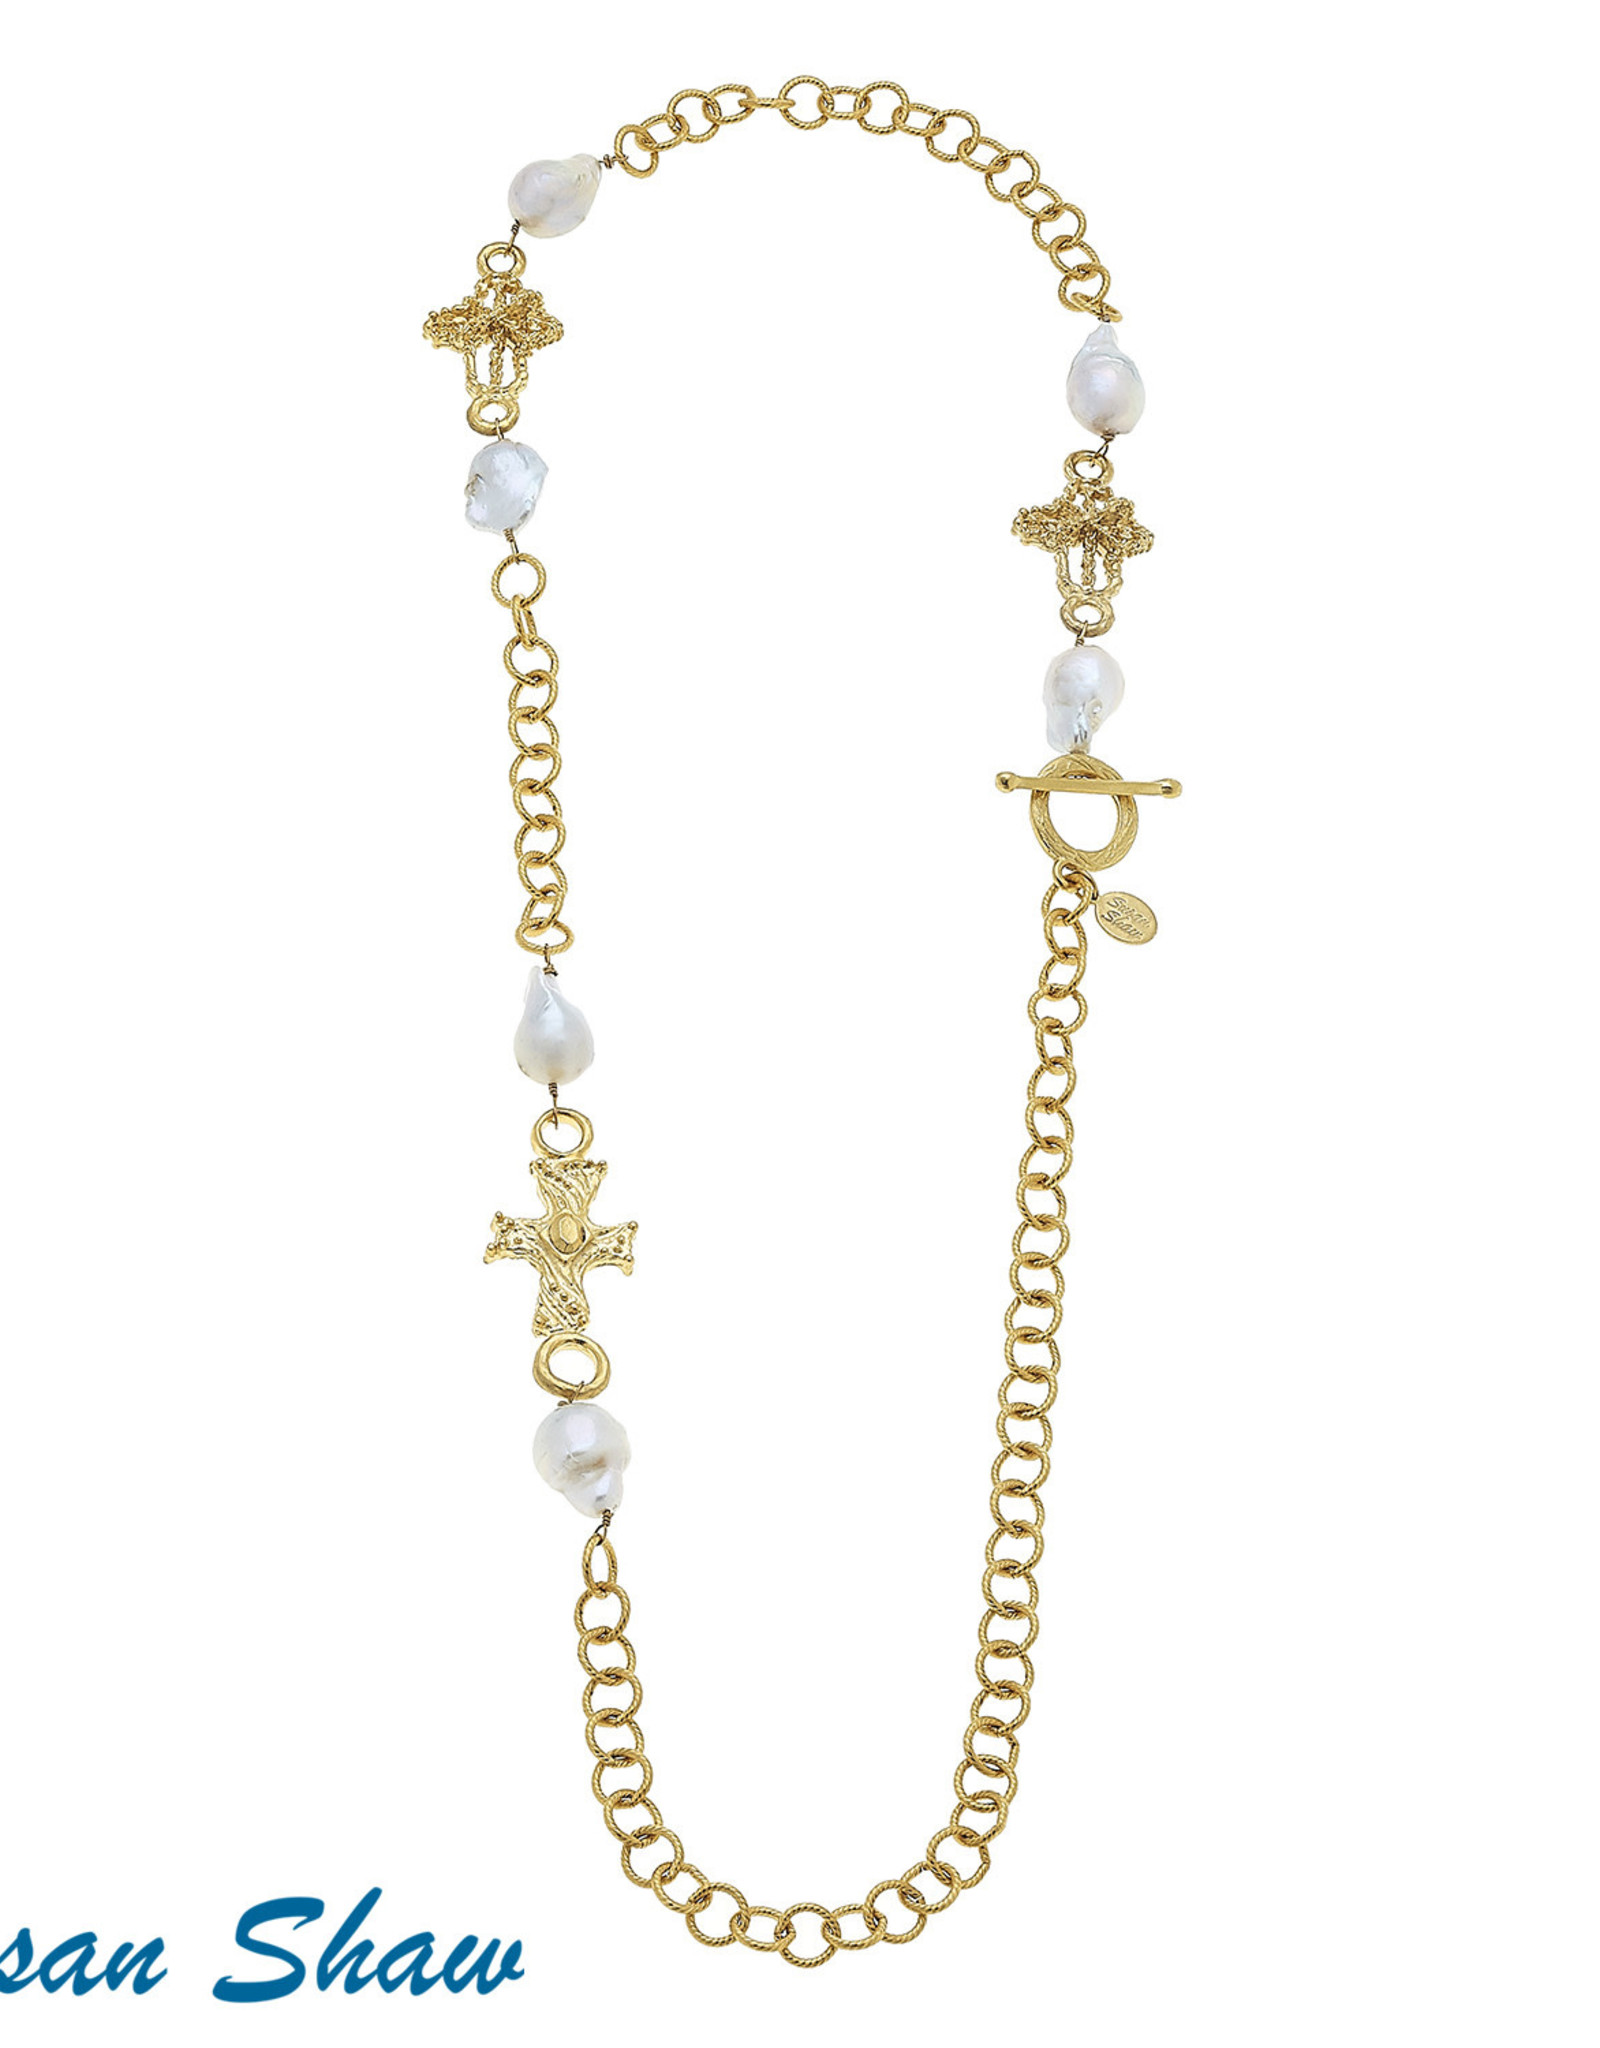 Susan Shaw Baroque Cross Necklace